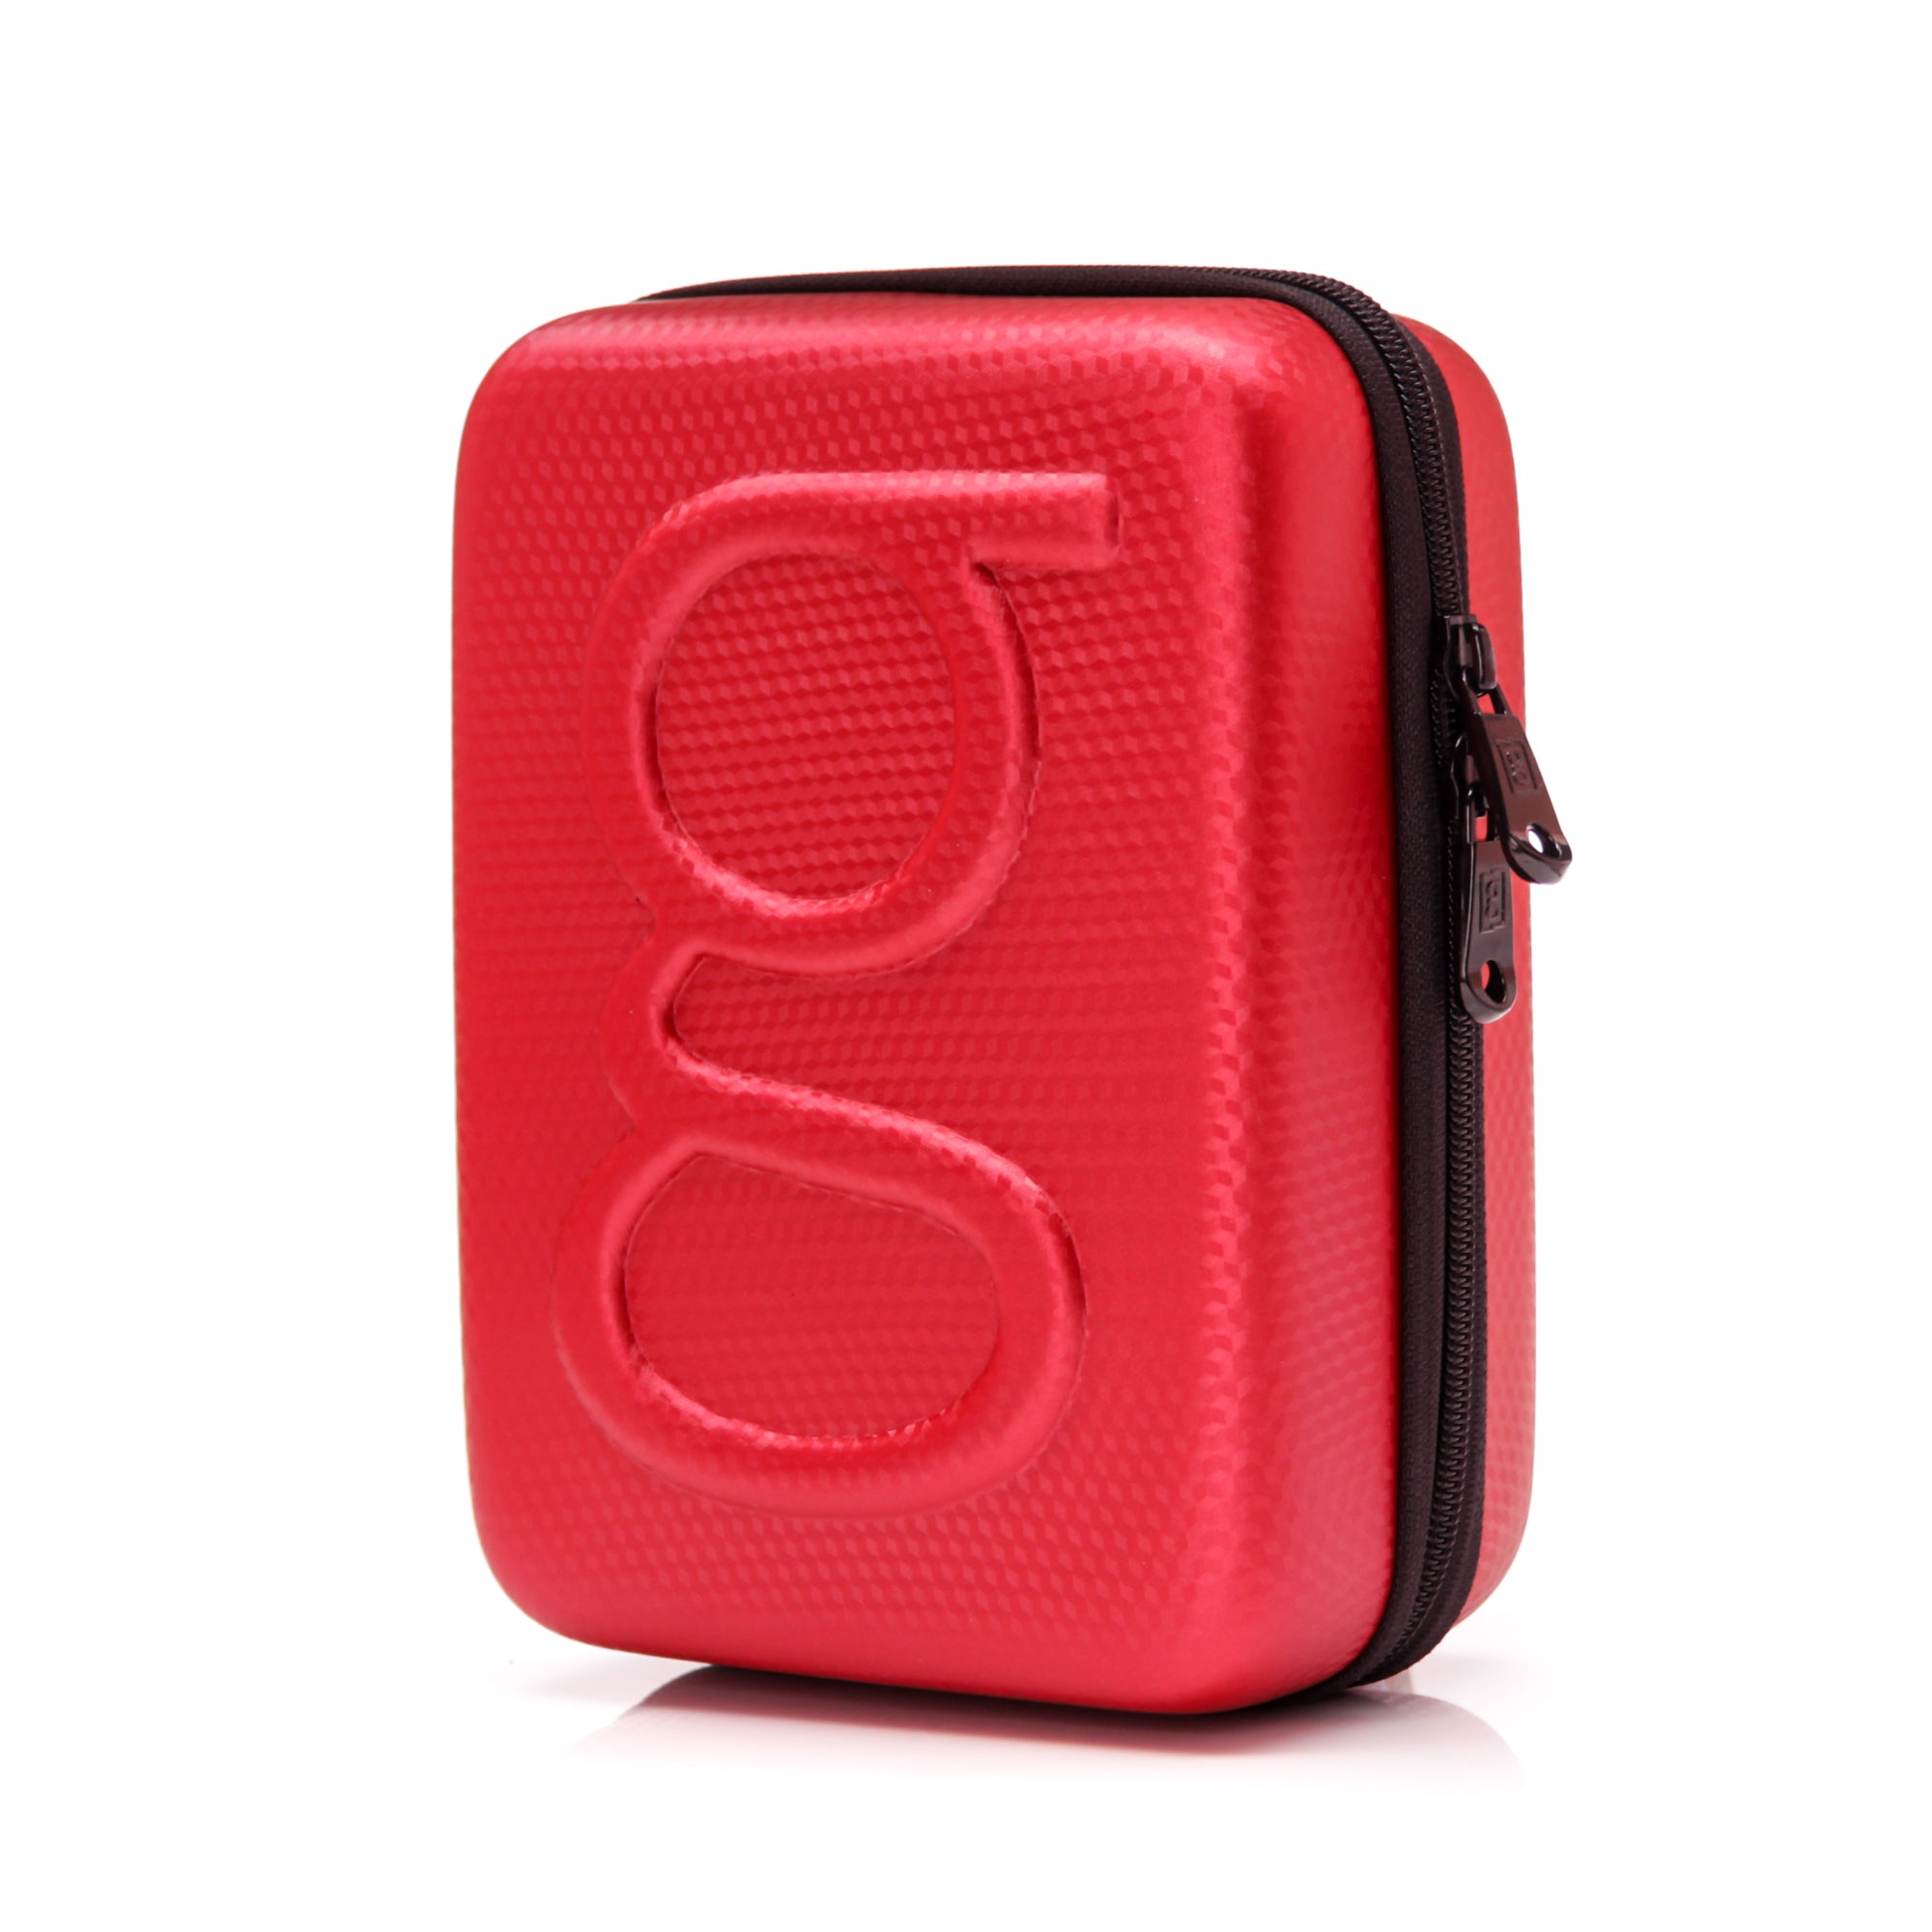 Glucology Diabetes Travel Case Plus II Bundle Red